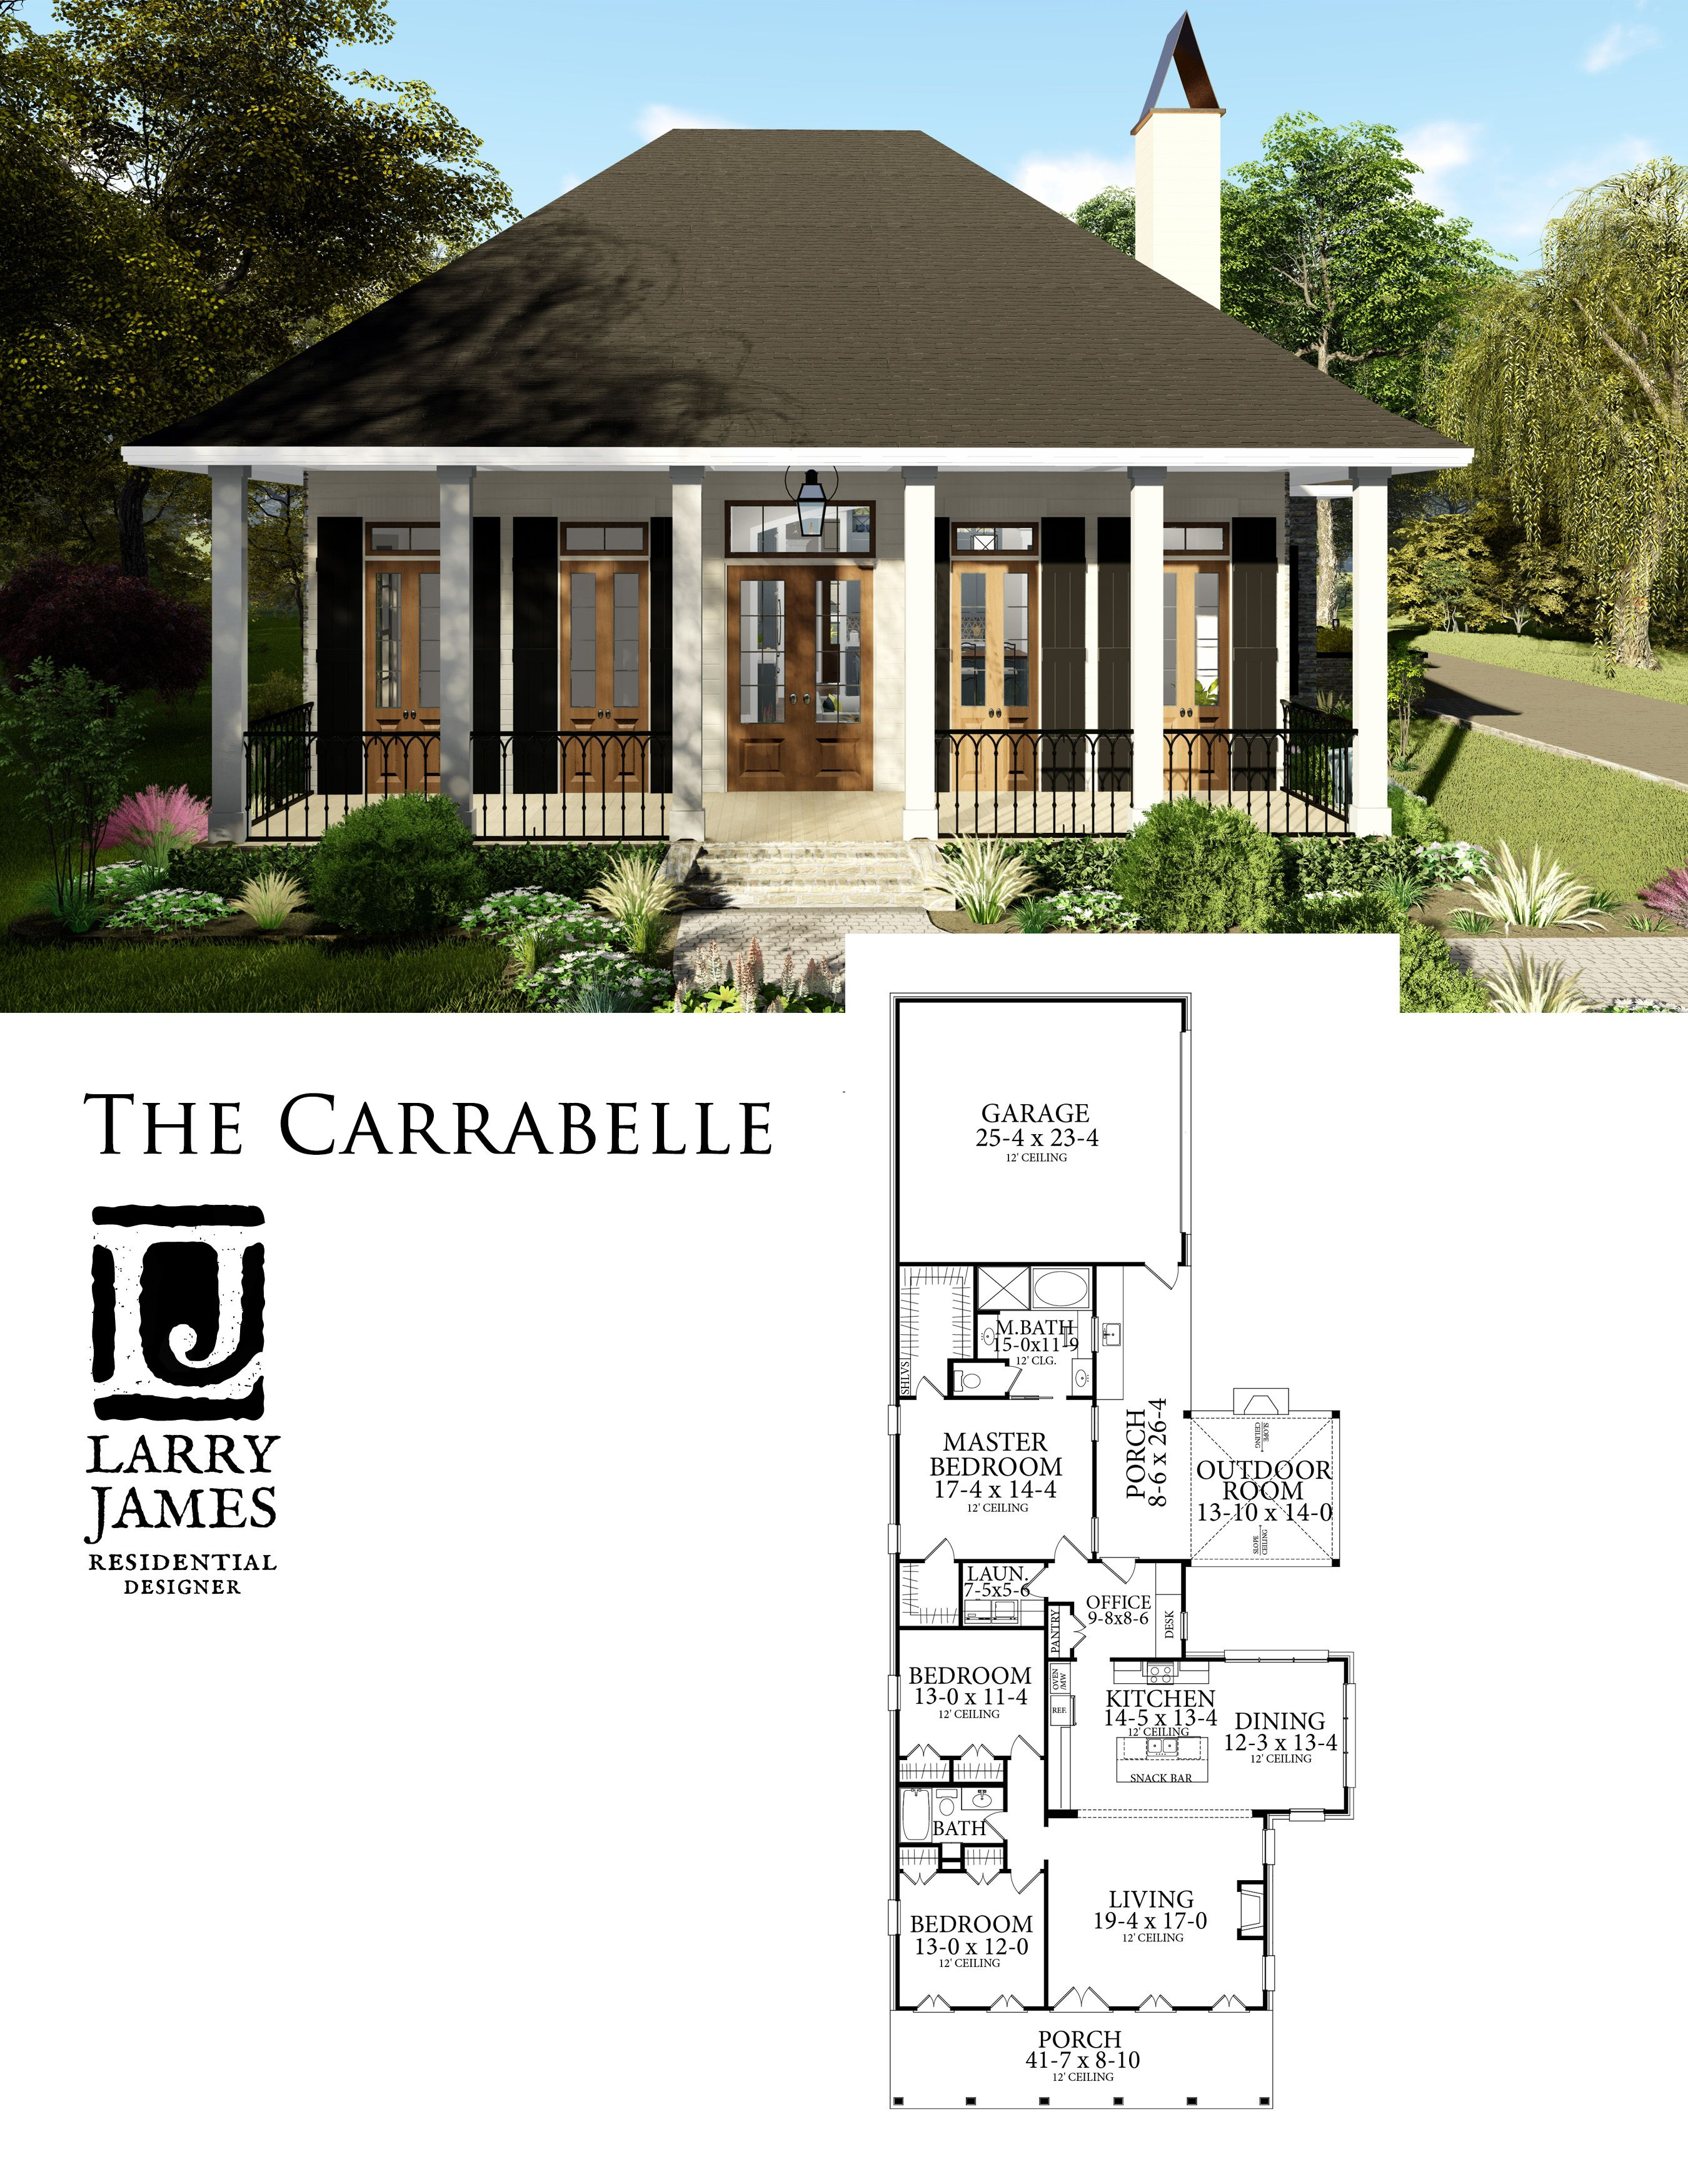 The Carrabelle 1799 Narrow Lot House Plans House Blueprints New House Plans